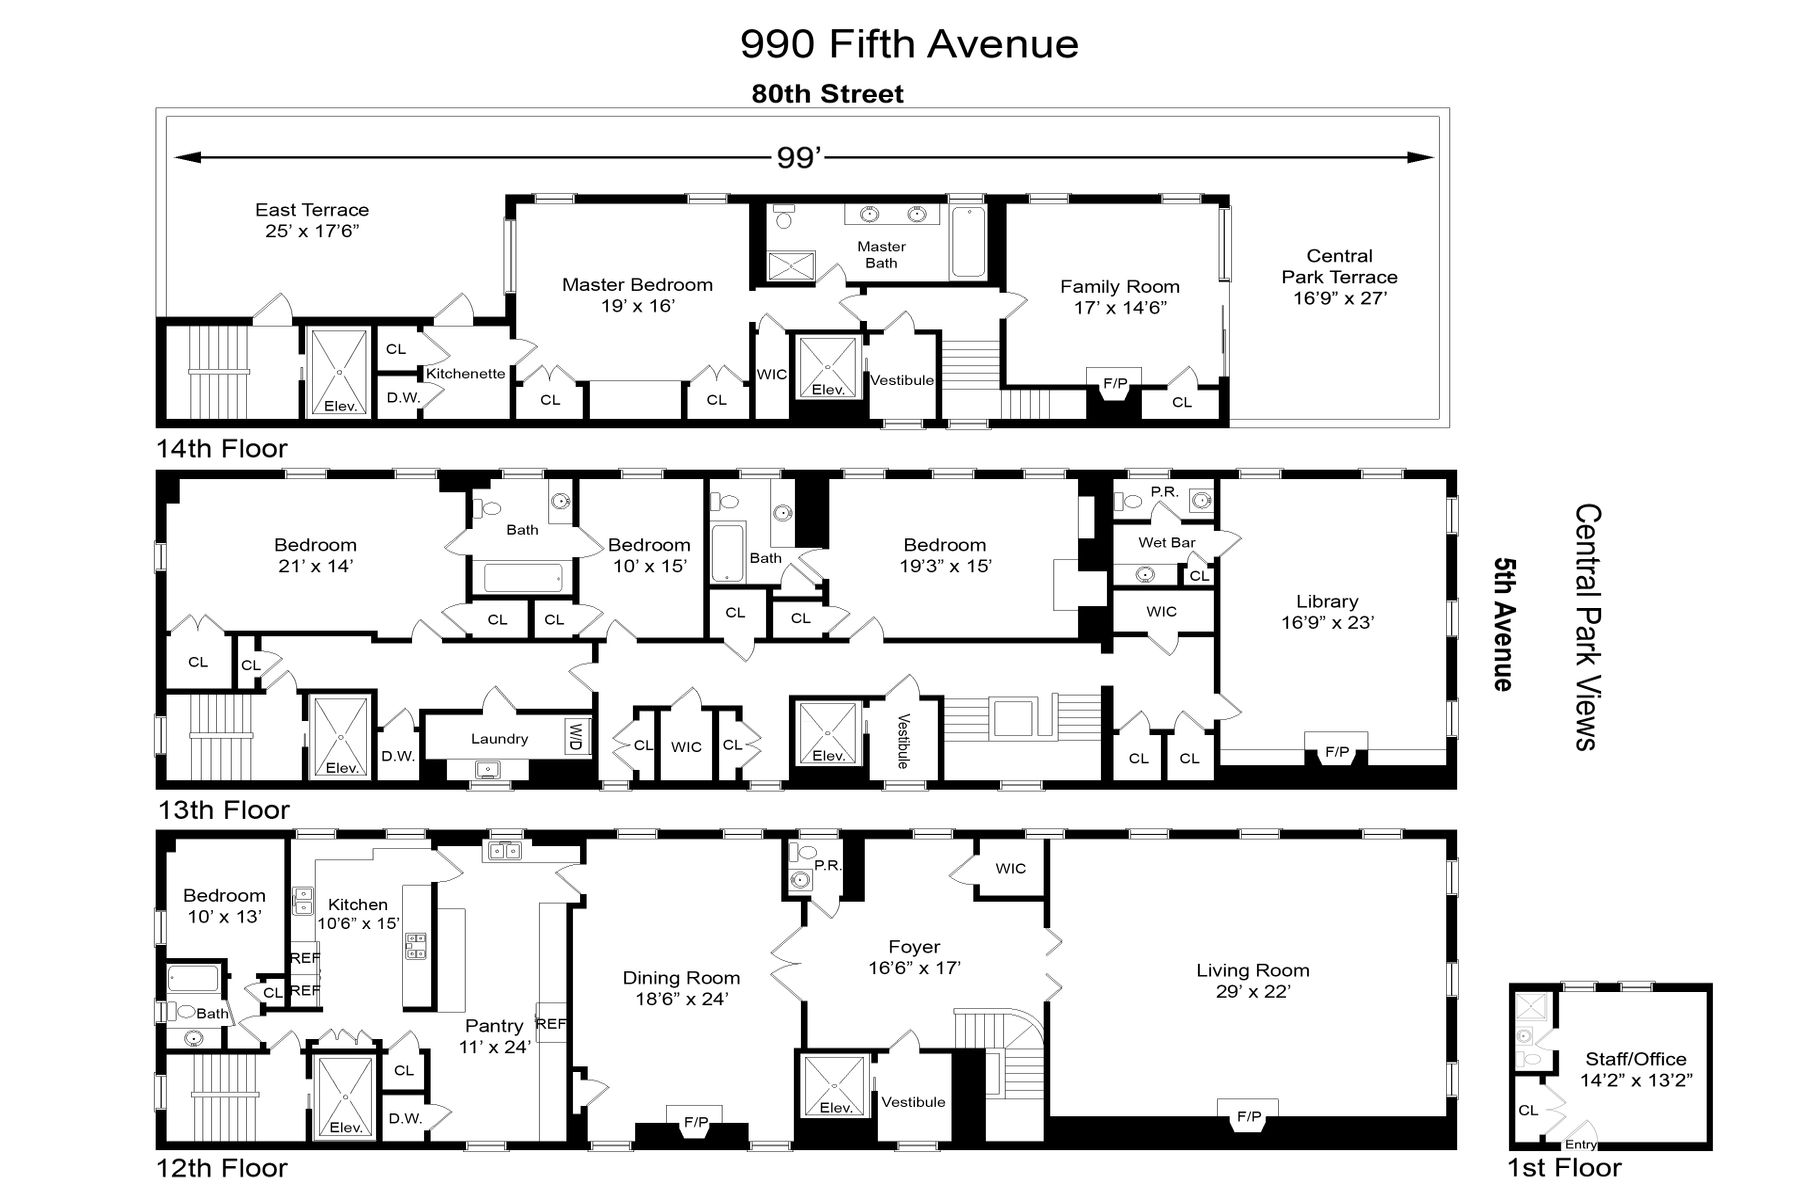 990 Fifth Avenue Upper East Side New York NY 10075